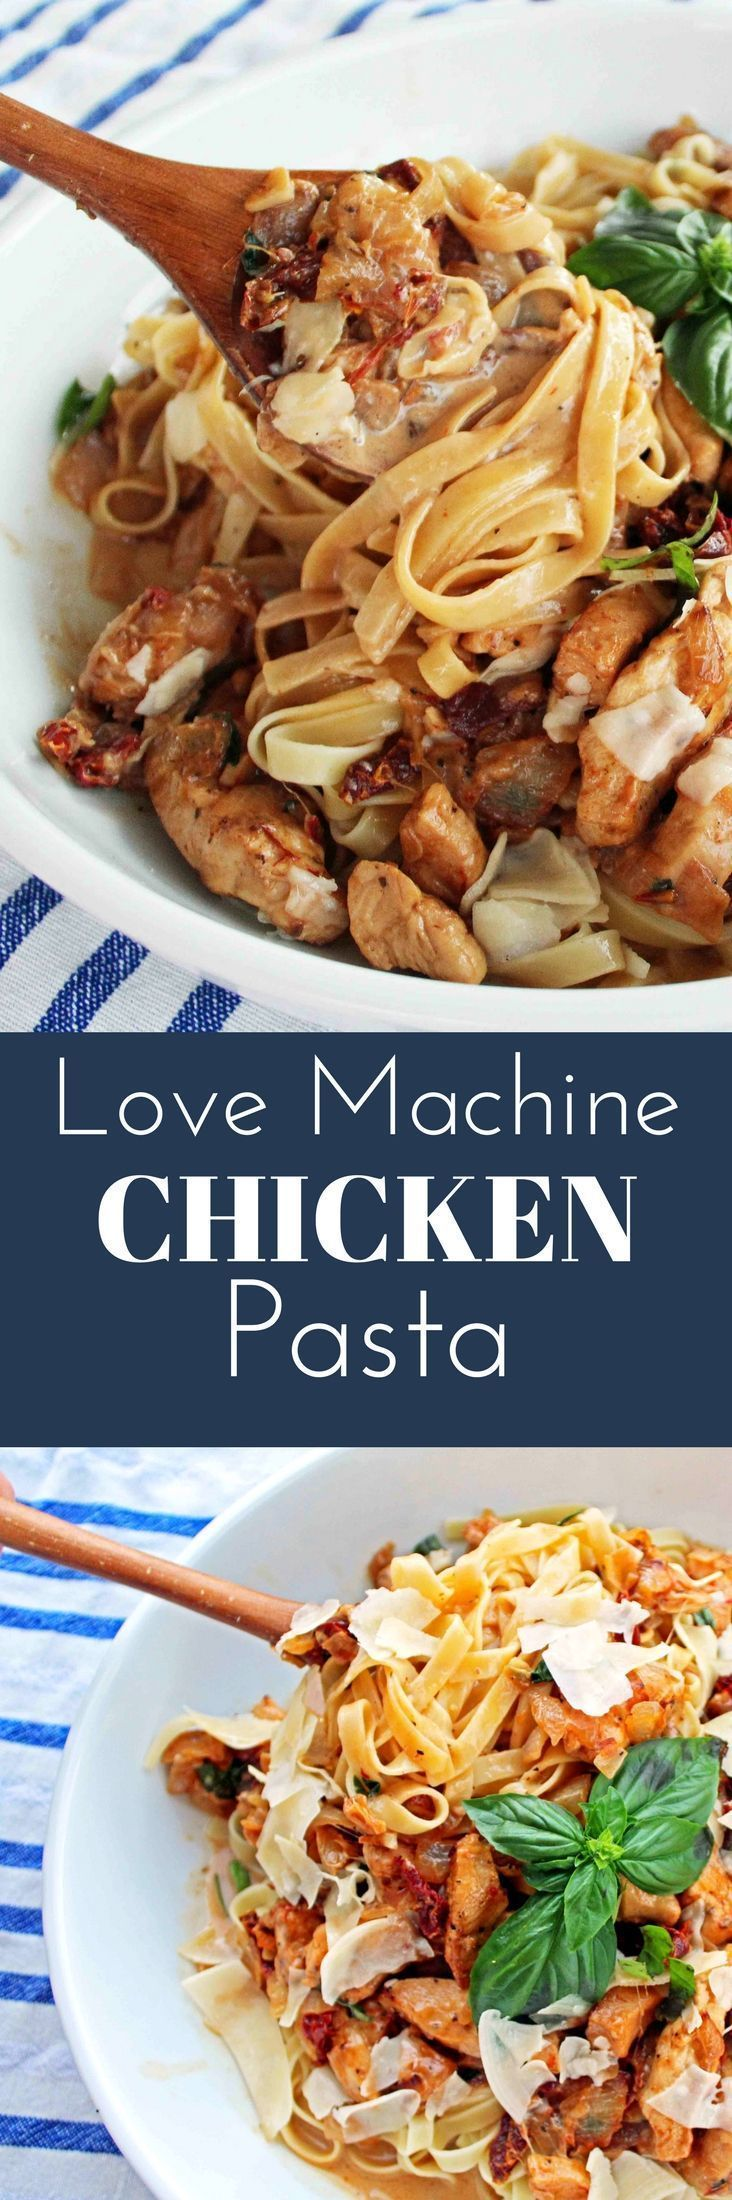 Love Machine Chicken Pasta made with tomato cream sauce, sauteed chicken, sundri... -  #chick... #tomatocreamsauces